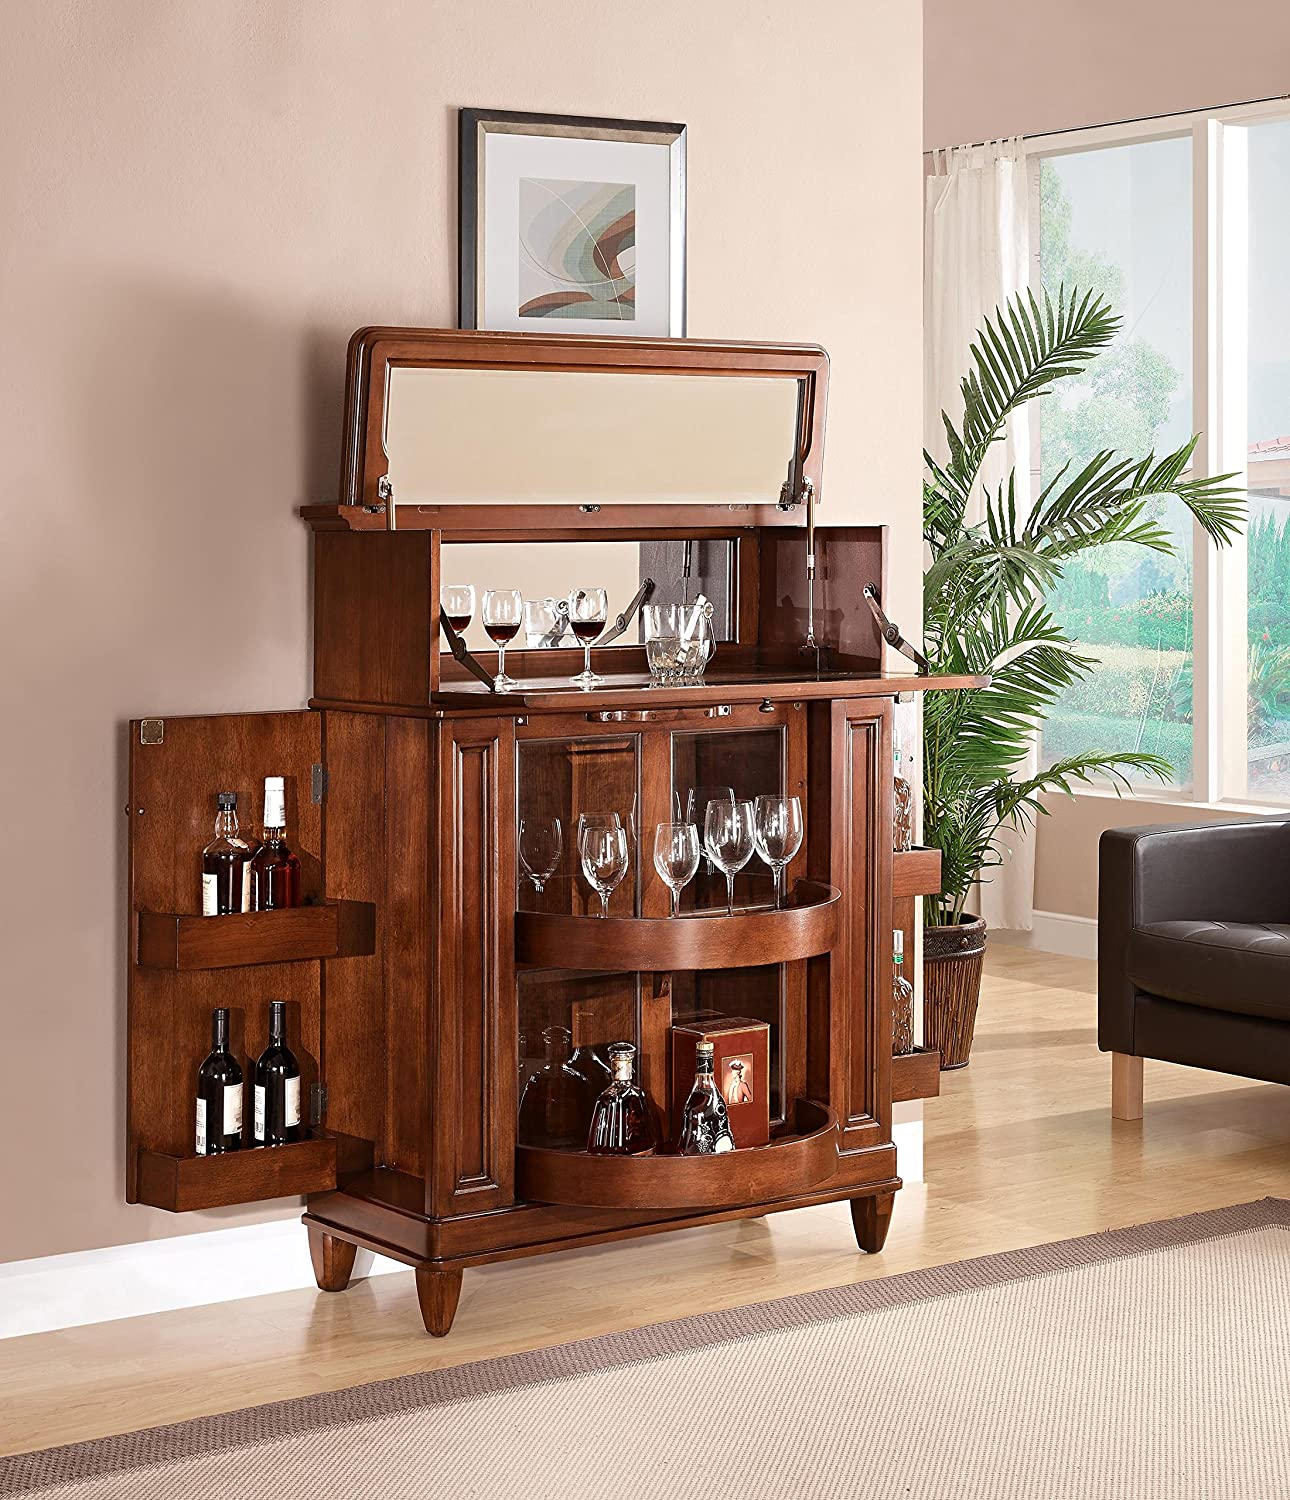 Wood Home Dining Room Bar Cabinet Furniture Bottle